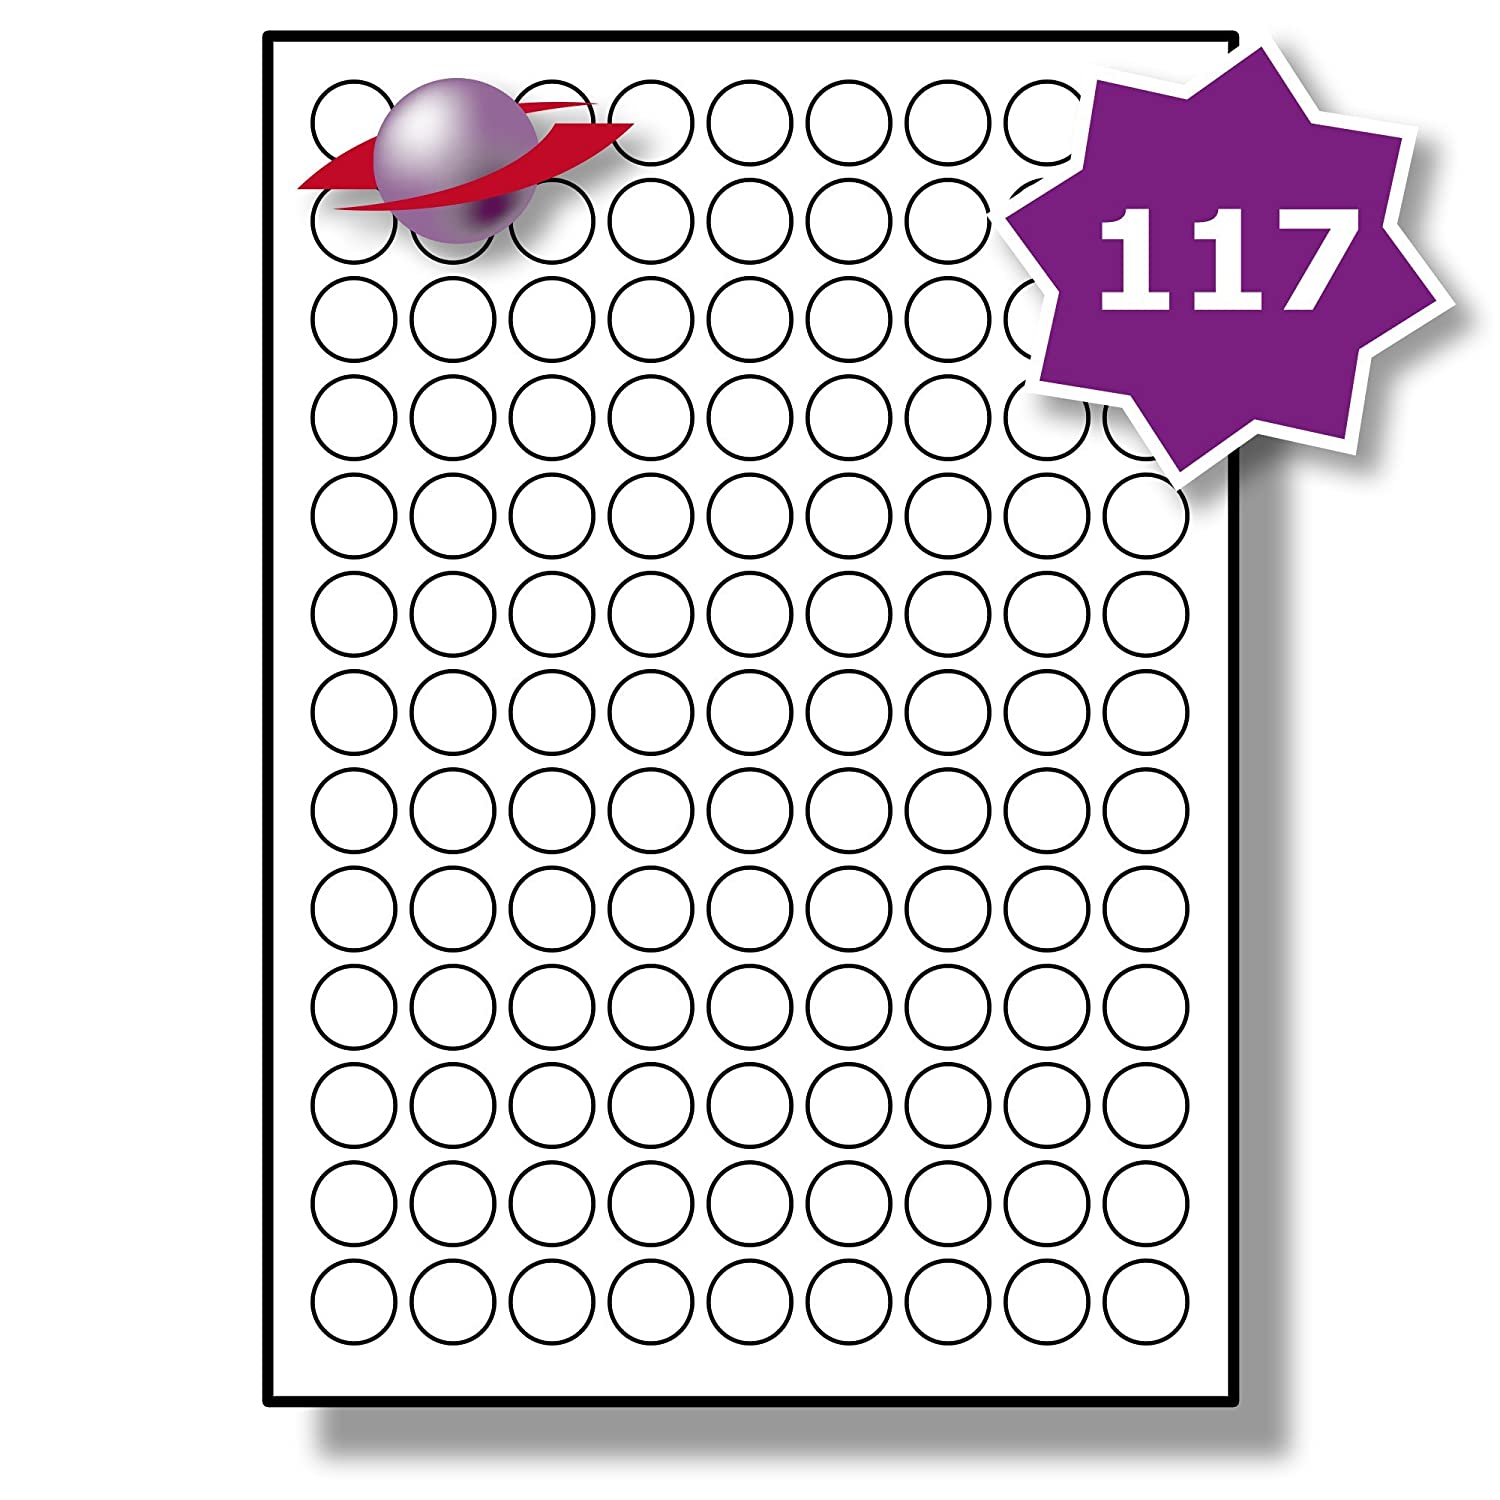 photograph regarding Printable Round Labels identify 117 For each Site/Sheet, 5 Sheets (585 Sticky Spherical Labels), Label Planet® Round White Blank Matt Self-Adhesive Simple A4 Circle Stickers, Printable With